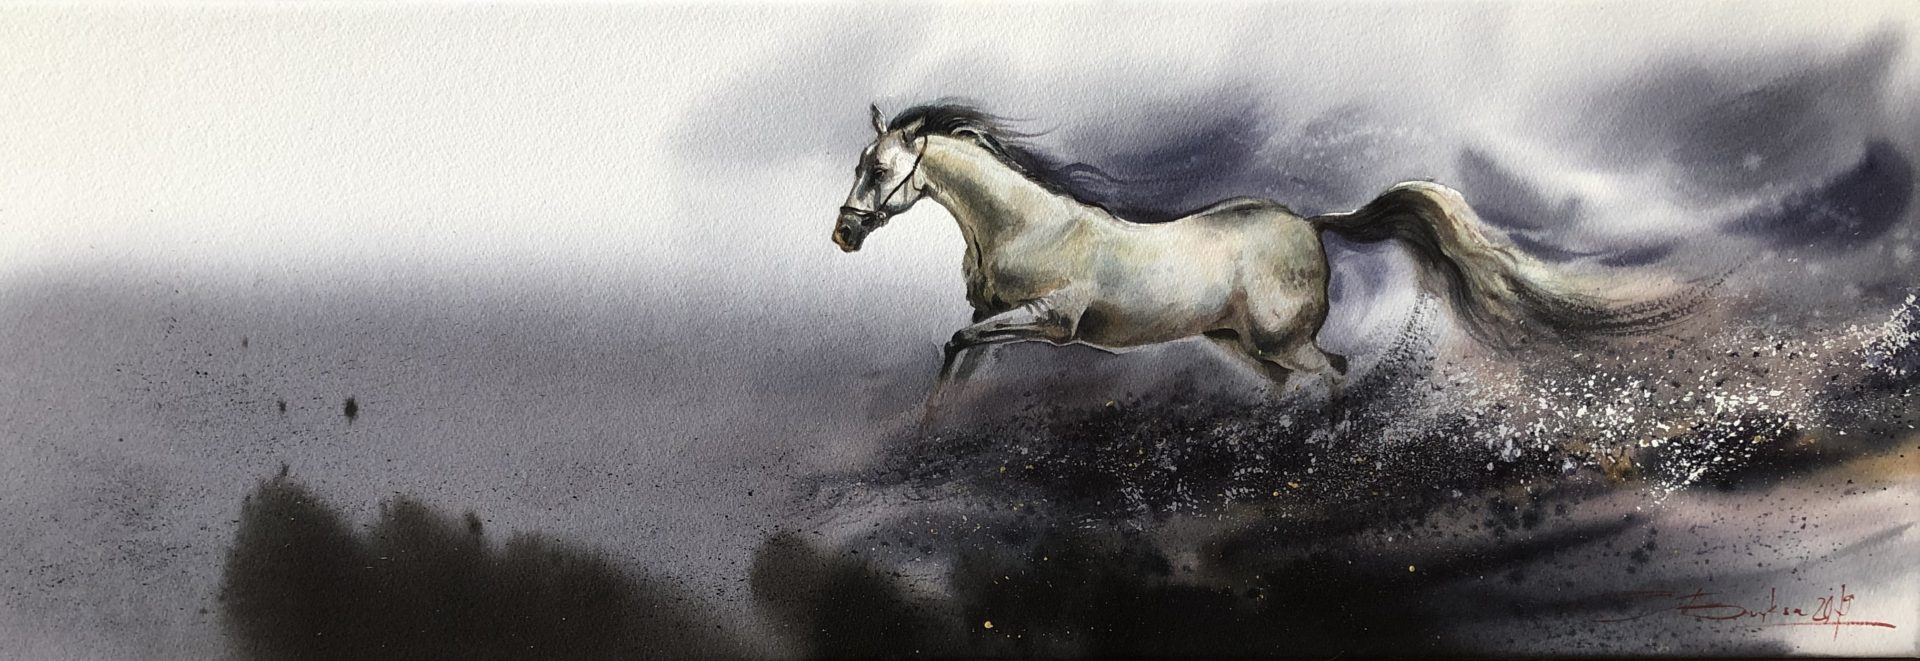 Freedom, Watercolour, 30x100cm, Svoboda